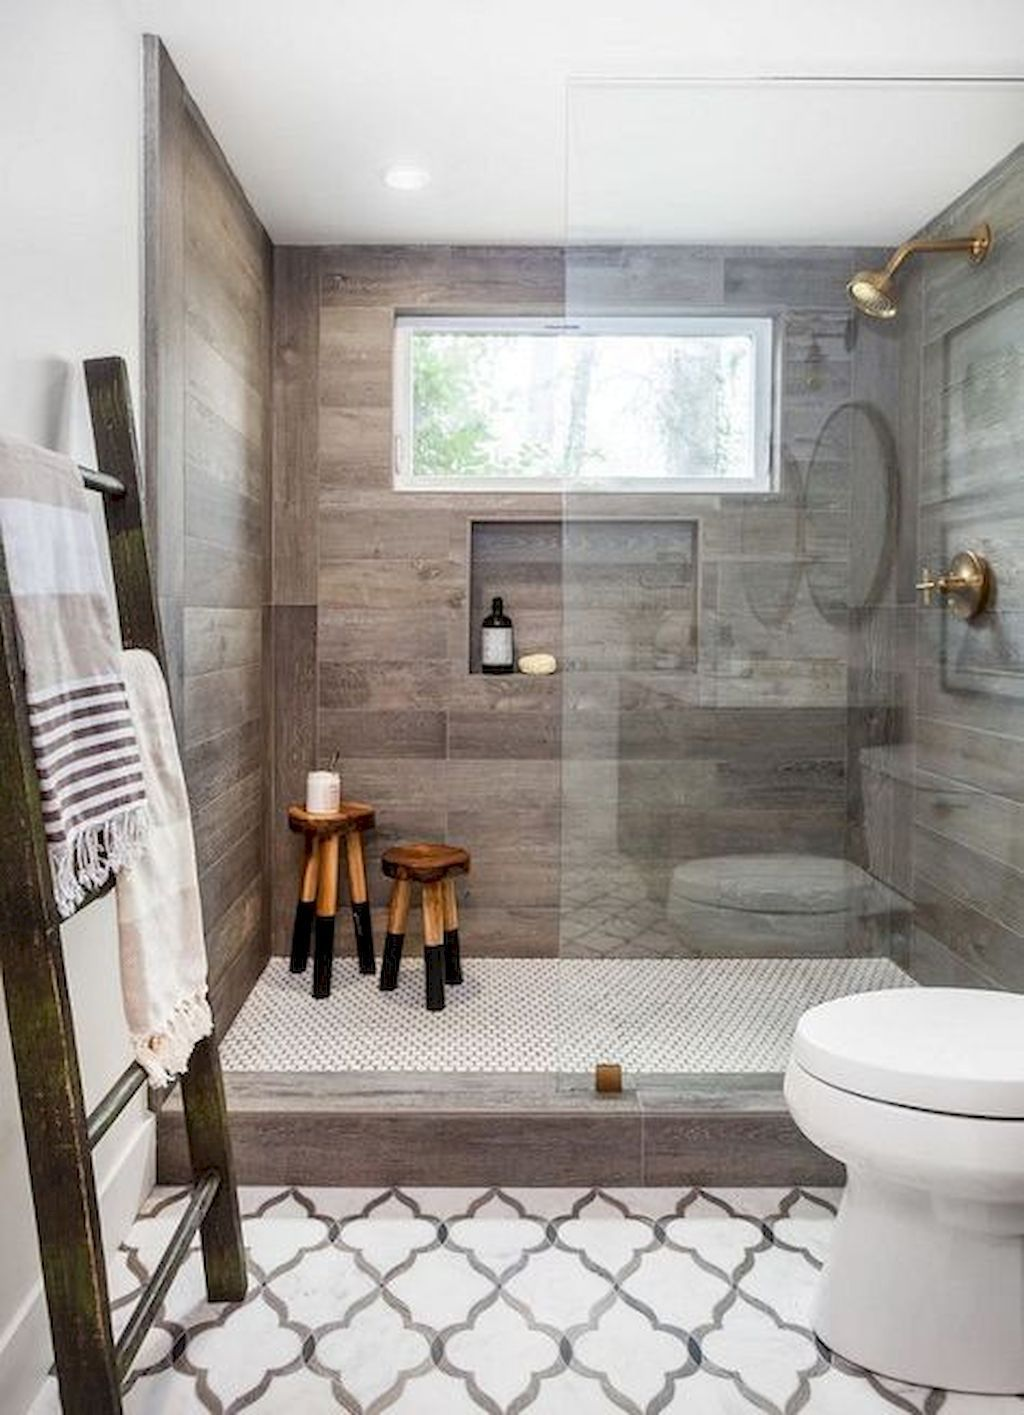 Find and save ideas about Bathroom tile